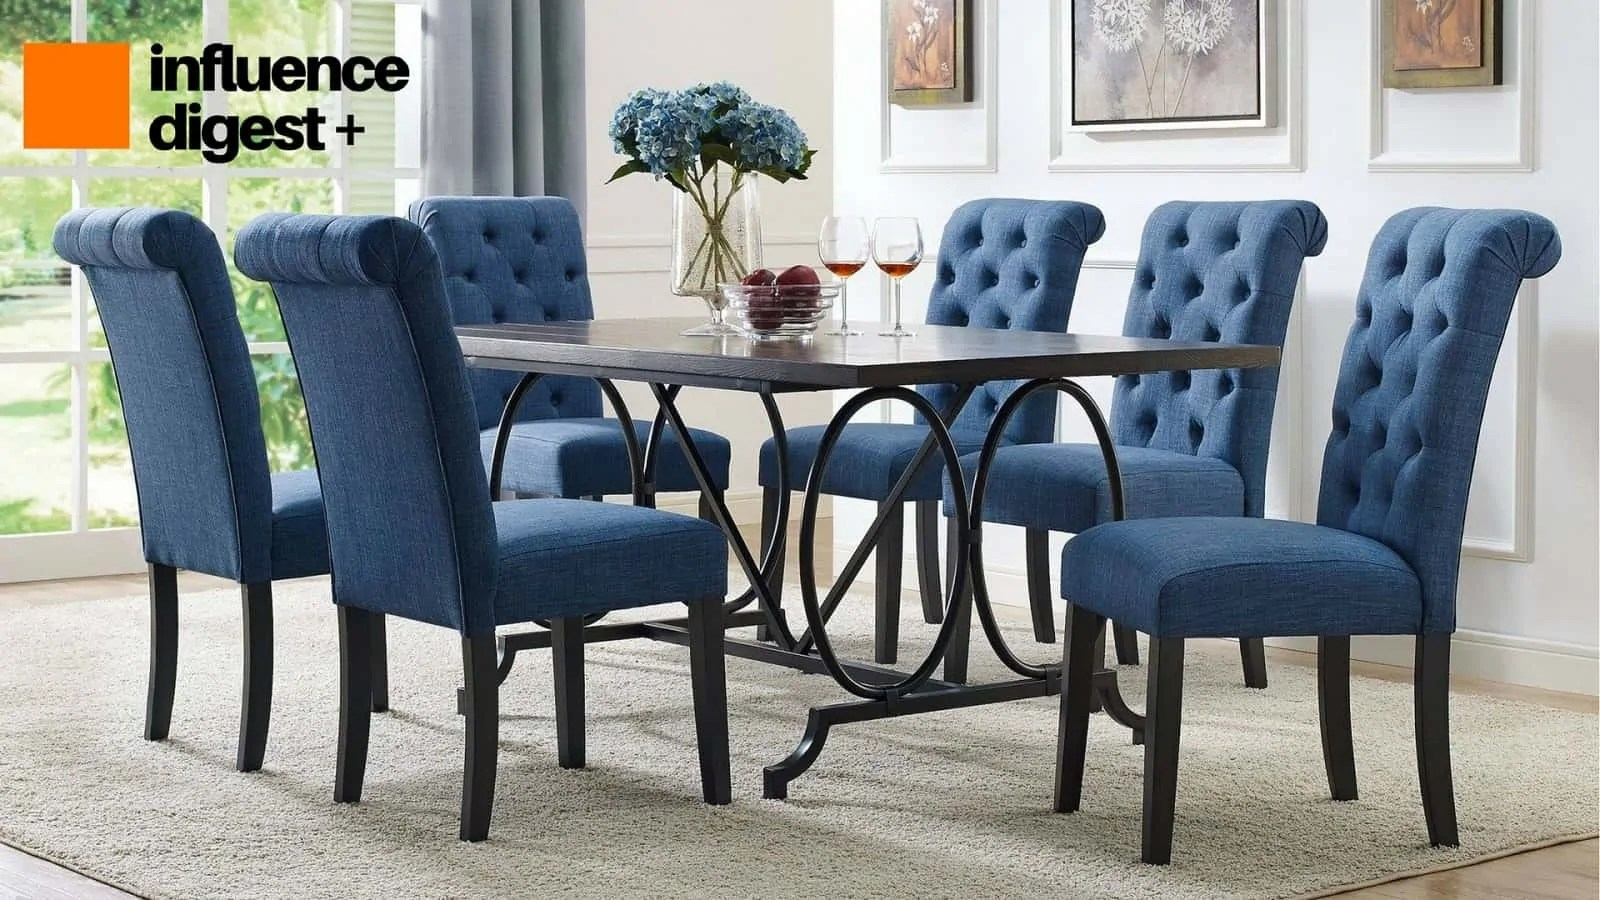 The Top 20 Best Online Furniture Stores The Top 20 Best Online Furniture Stores of 2018